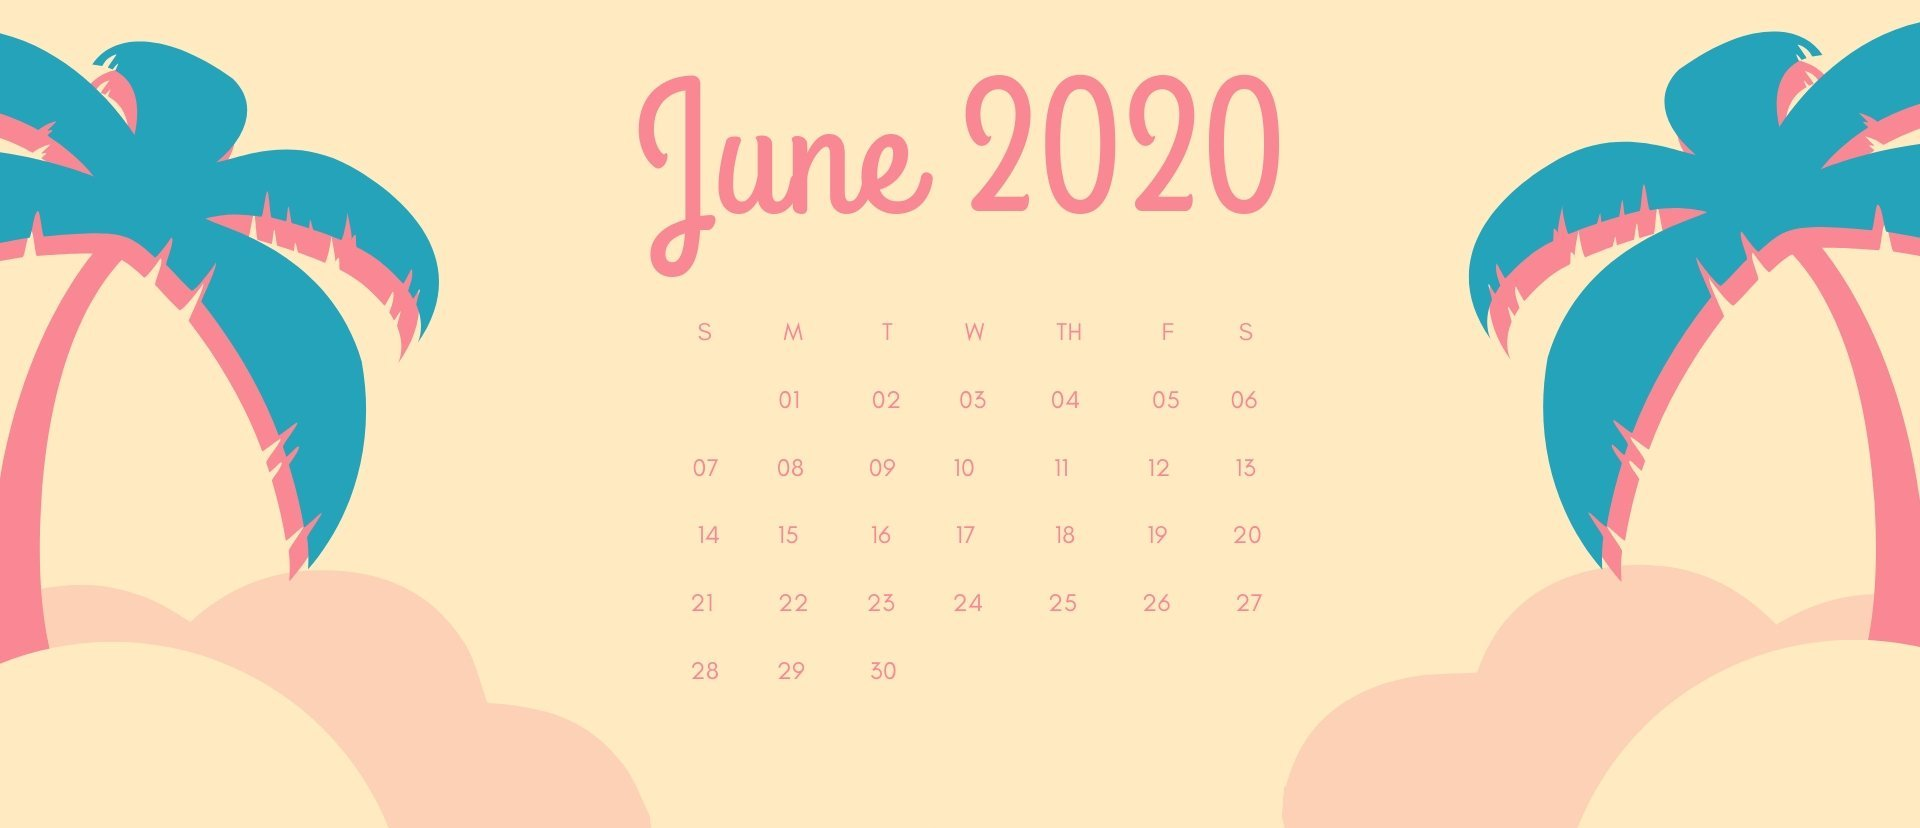 June 2020 Calendar Desktop Wallpaper